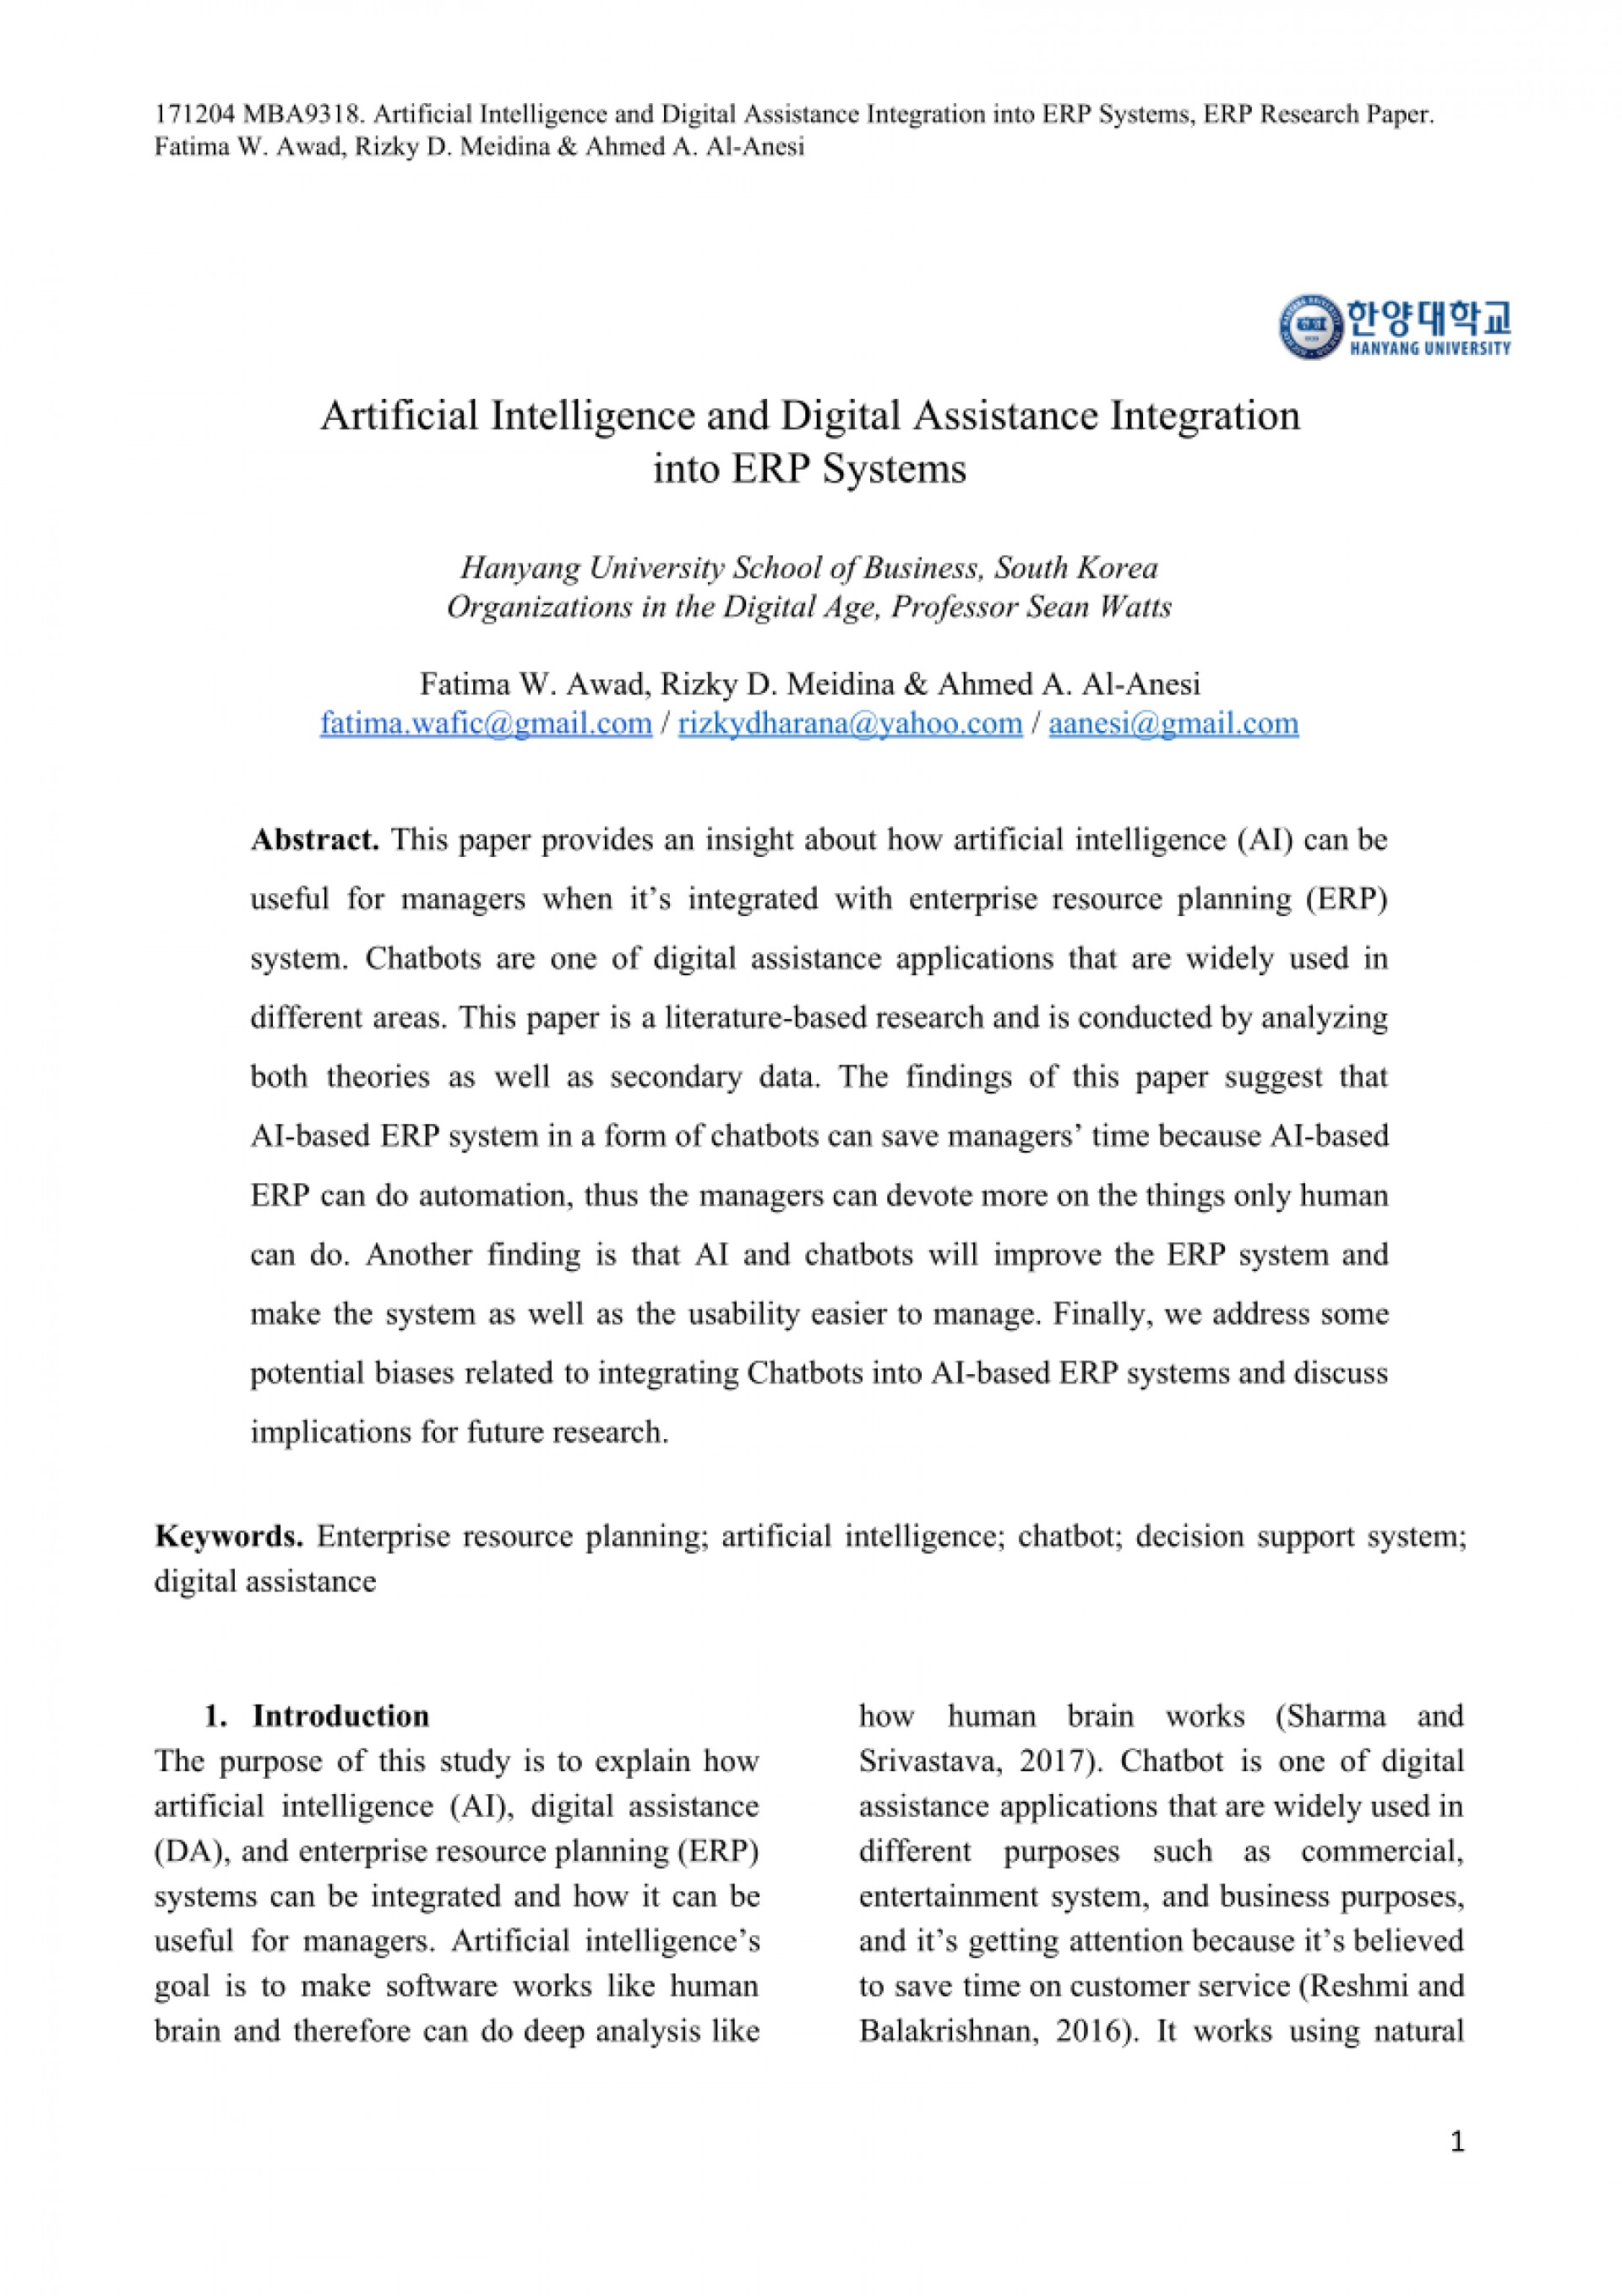 001 Research Paper Artificial Intelligence Papers Unique 2017 On Pdf 1920